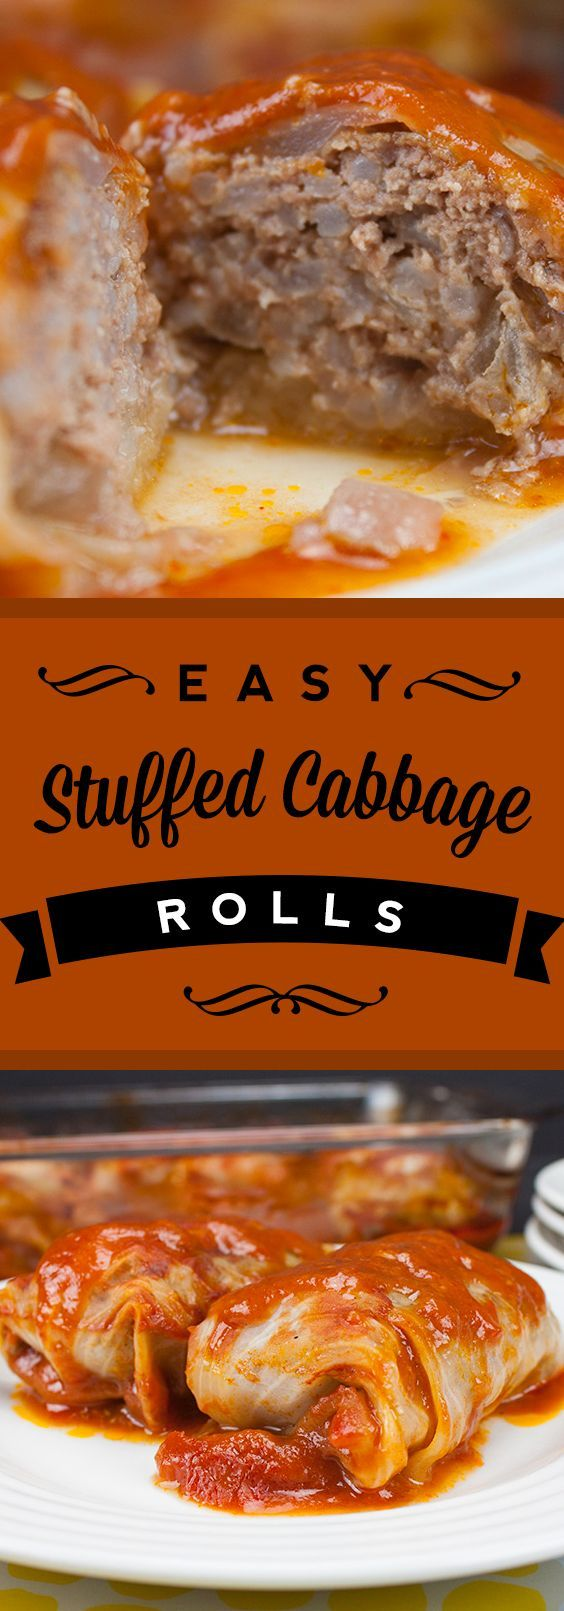 574 best polish food recipes images on pinterest polish recipes easy stuffed cabbage rolls are a great comfort food recipe to have in your rotation meaty saucy goodness in a neat little package forumfinder Images